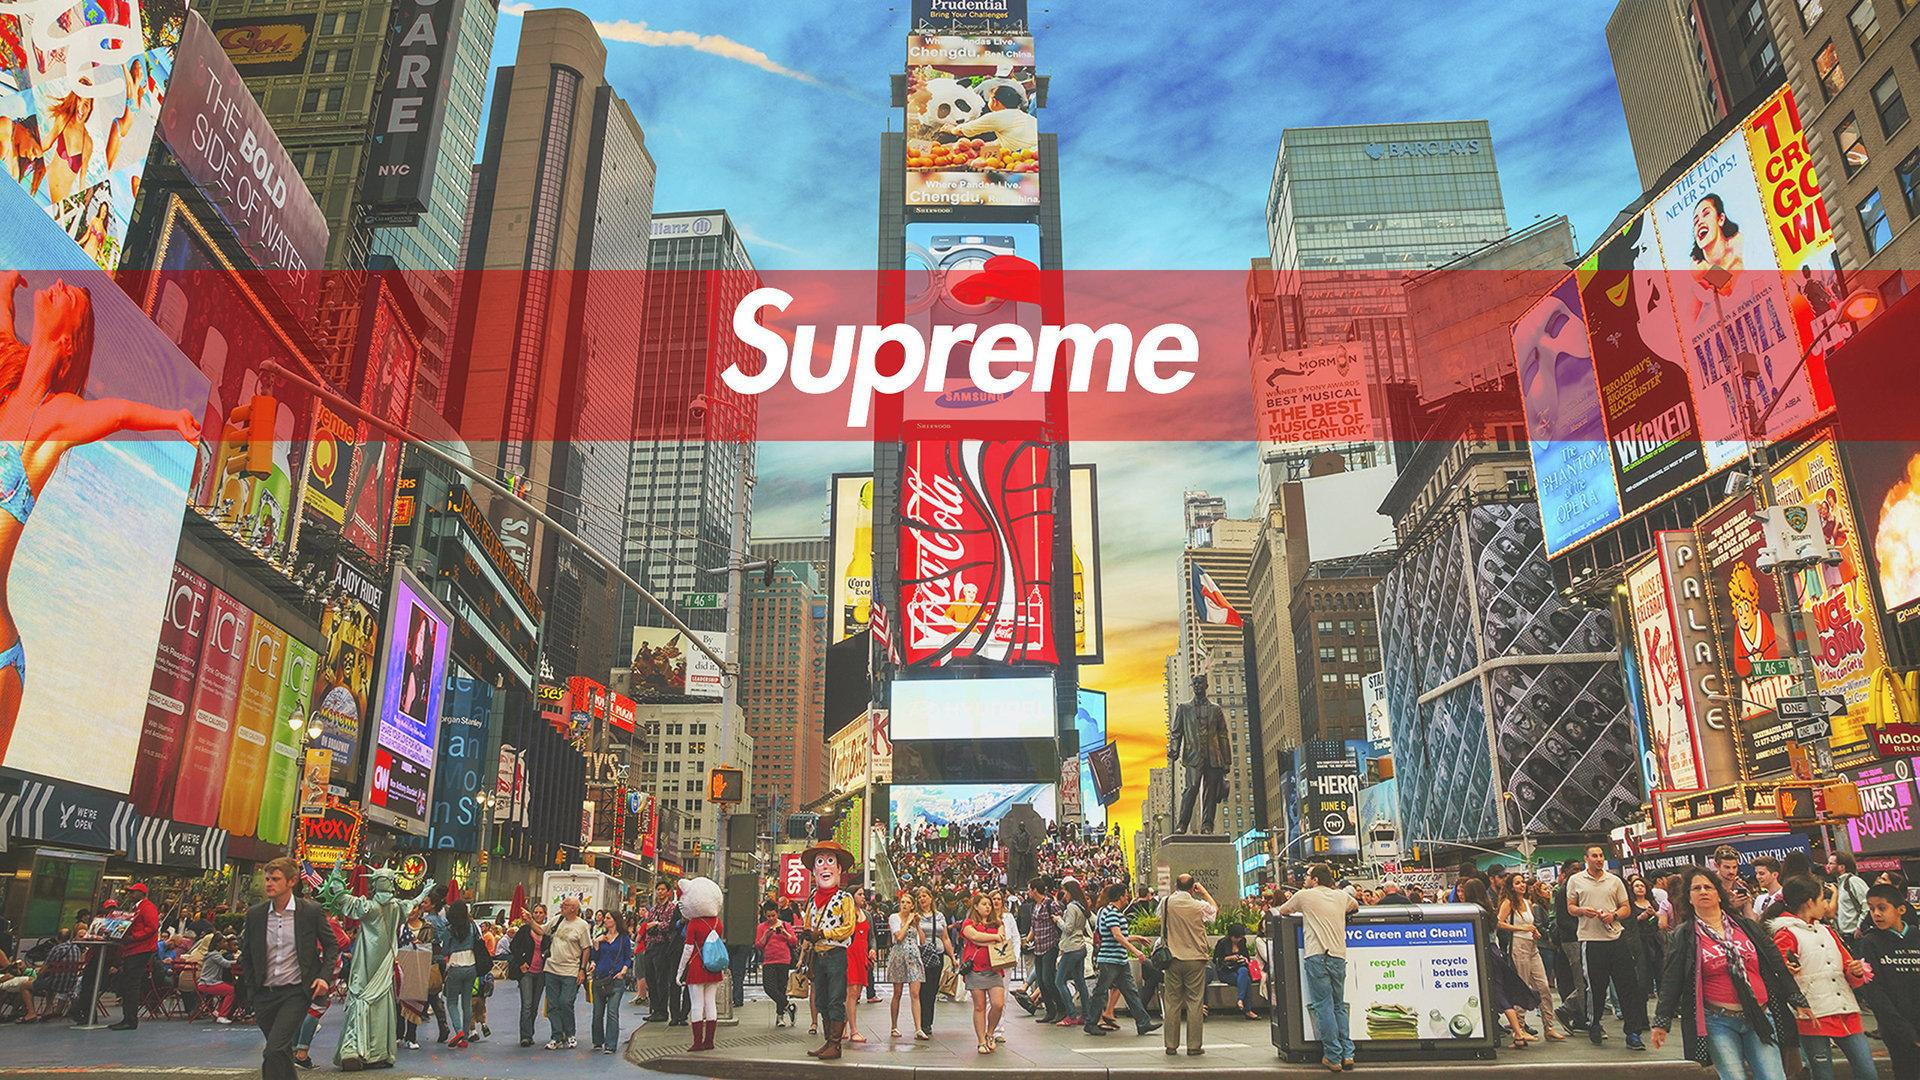 Supreme PC Wallpapers - Wallpaper Cave